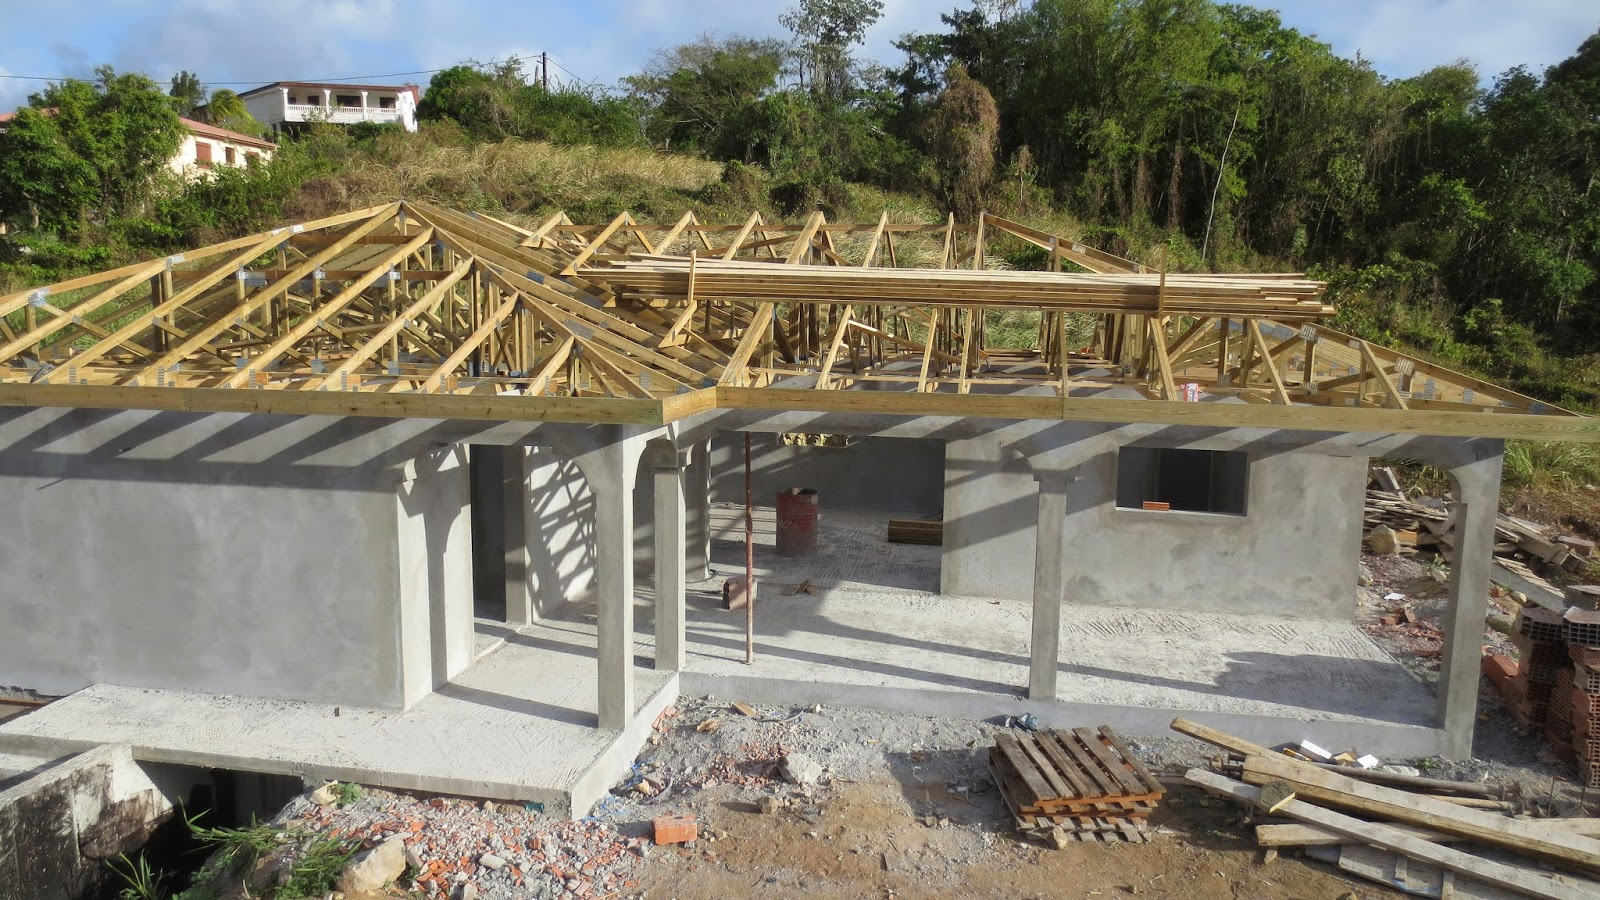 Tarif construction maison martinique la toiture la for Tarif architecte construction maison